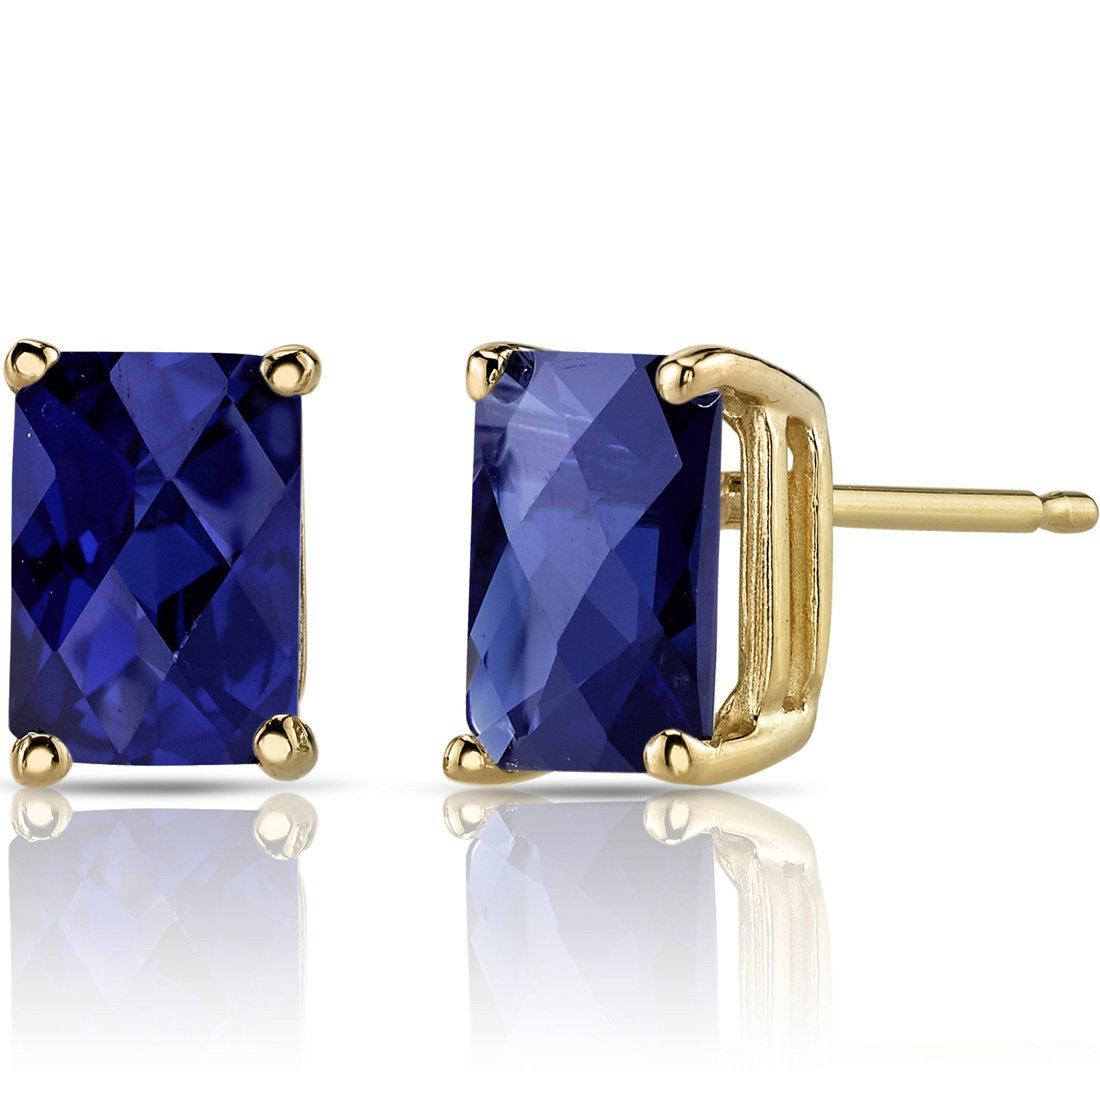 14K 14ct Yellow Gold 2 Ct Lab Blue Sapphire Stud Earrings Radiant Cut 6 x 6 mm